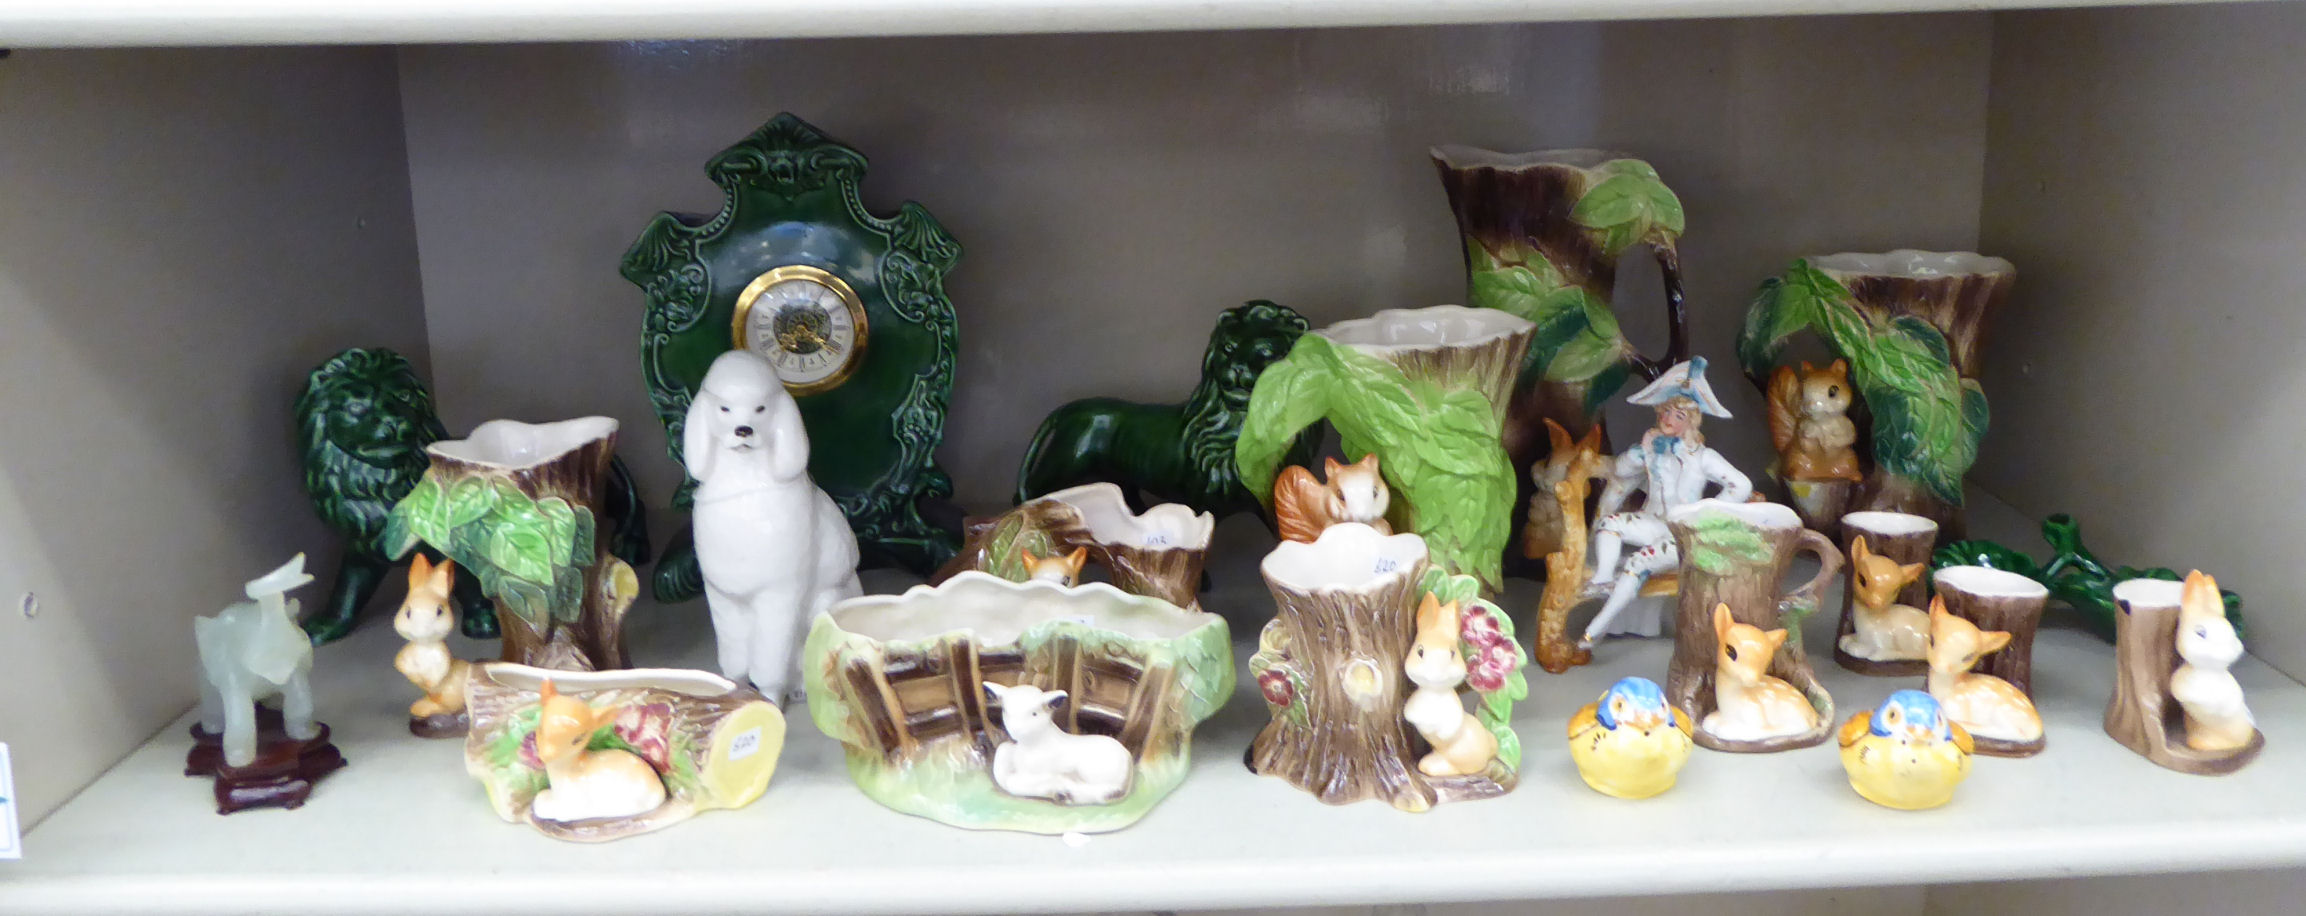 Lot 58 - Decorative ceramics, mainly Hornsea pottery: to include a vase,